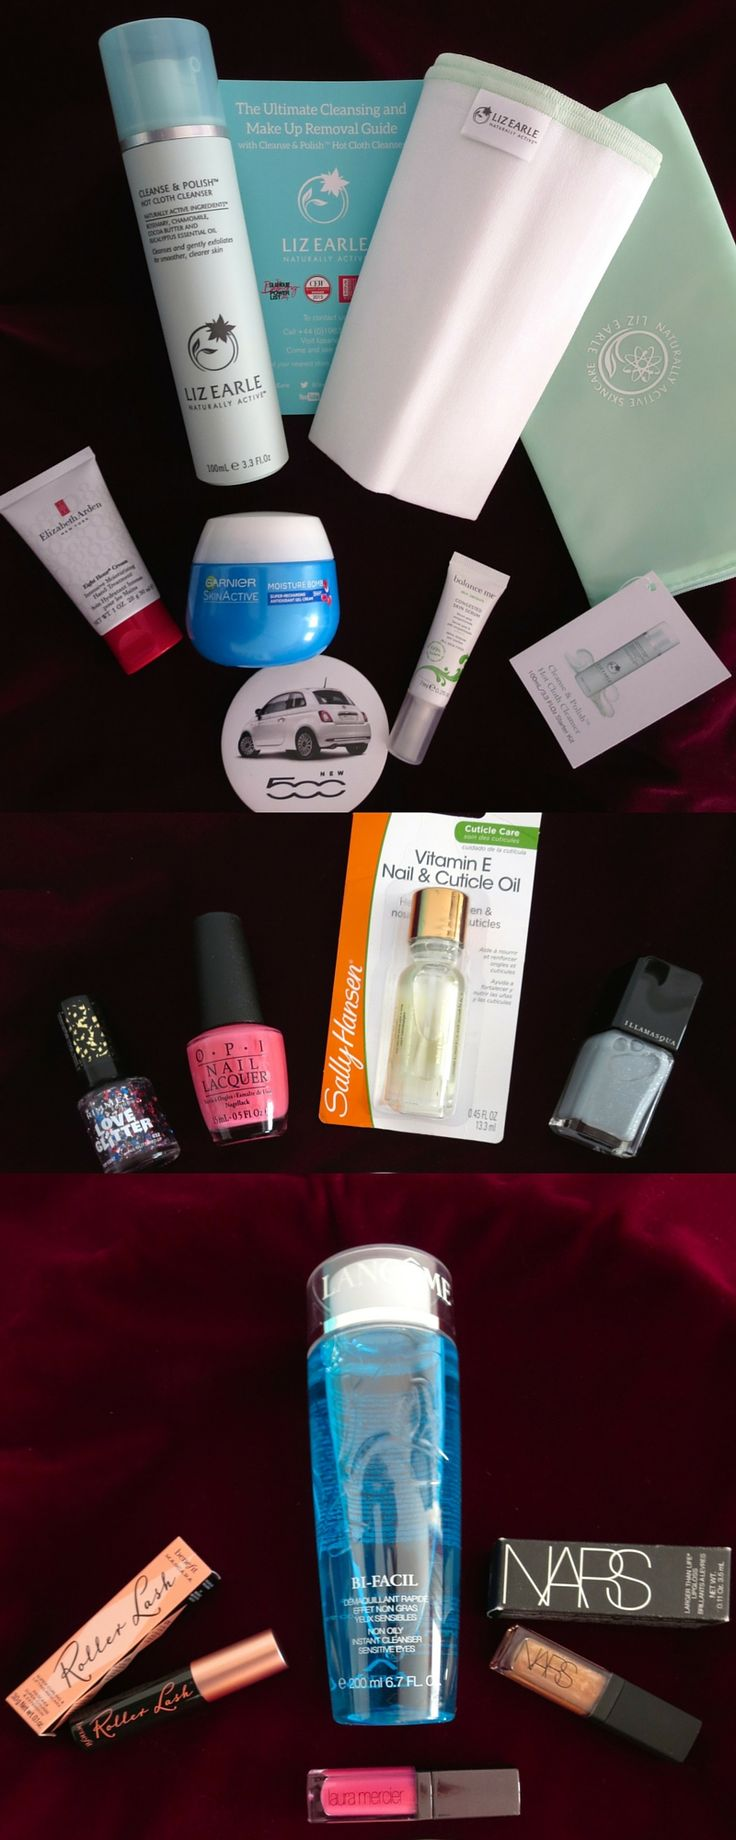 2016 Glamour Beauty Festival Goodie Bag